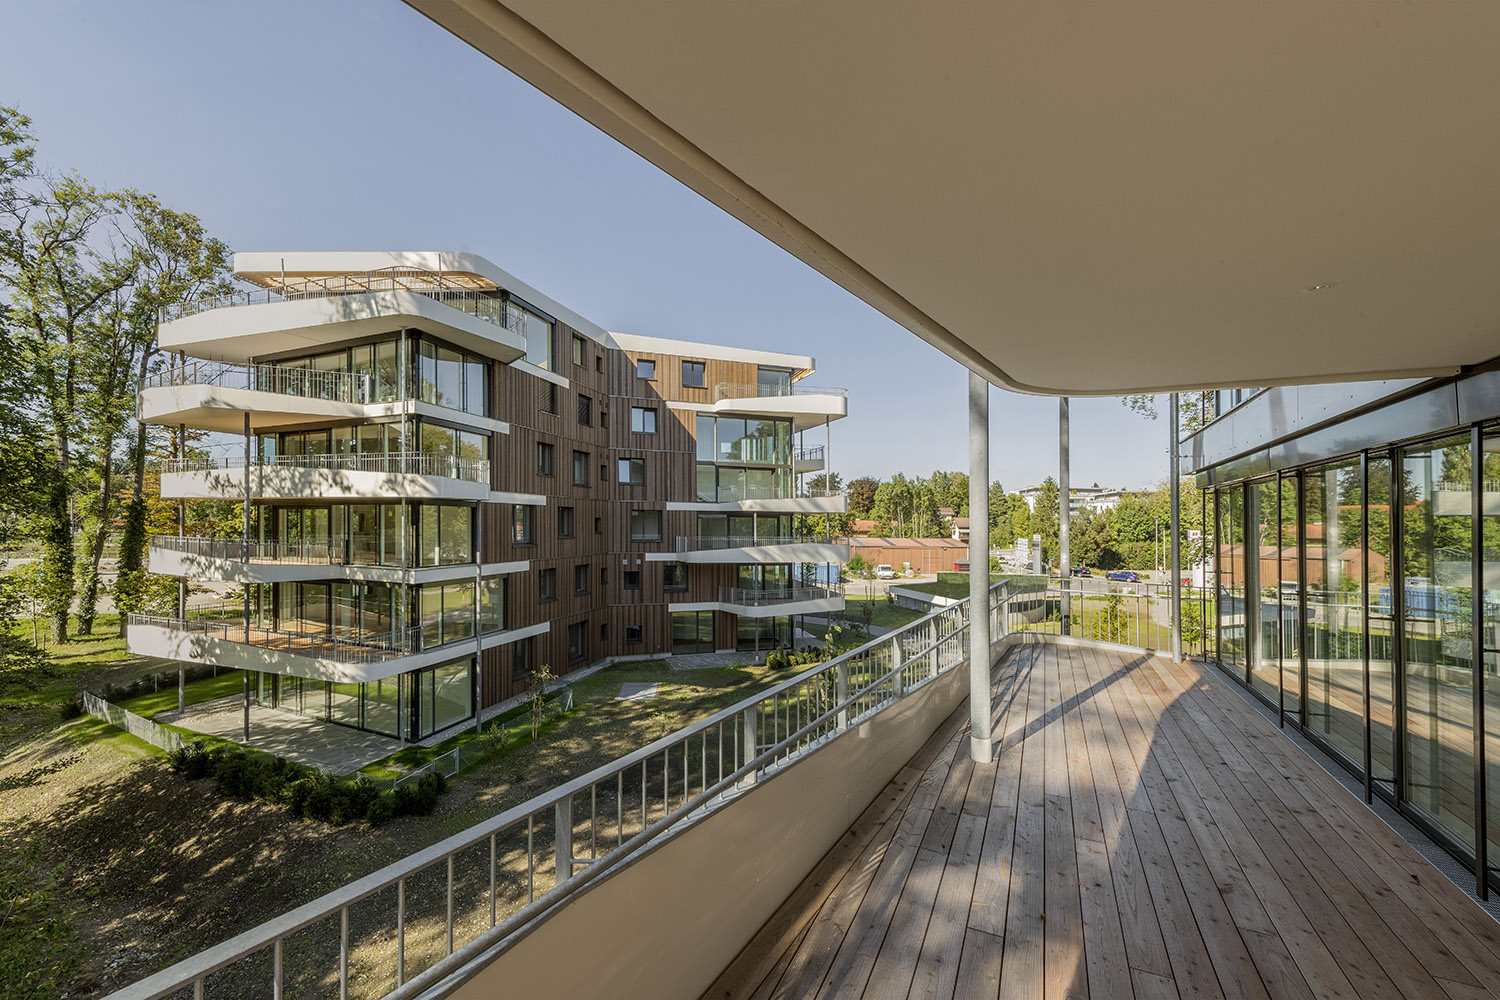 The balconies create additional, private outdoor areas. David Matthiessen